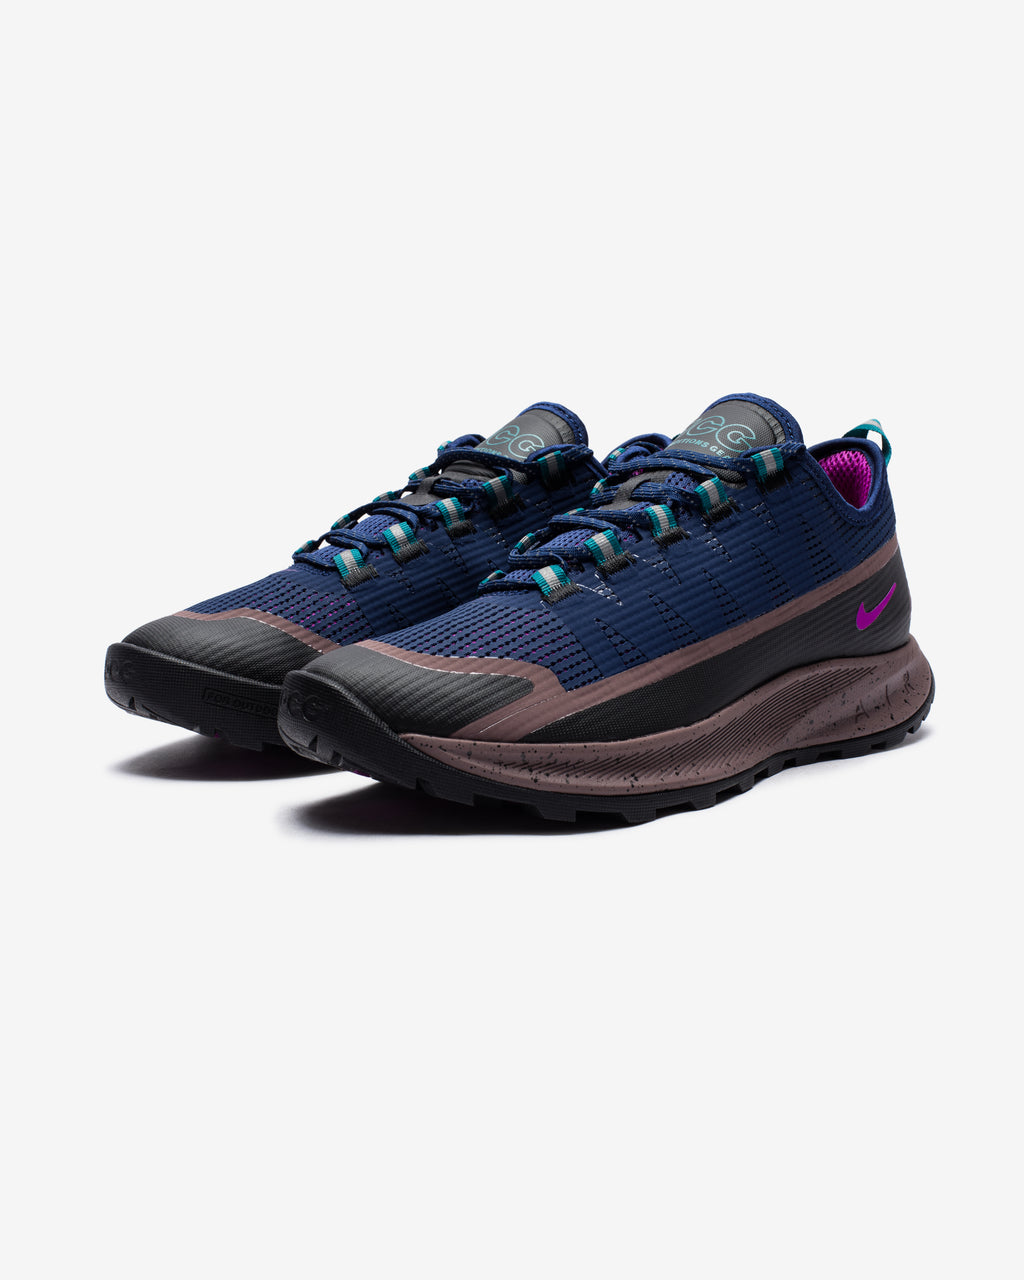 ACG AIR NASU - BLUEVOID/ VIVIDPURPLE